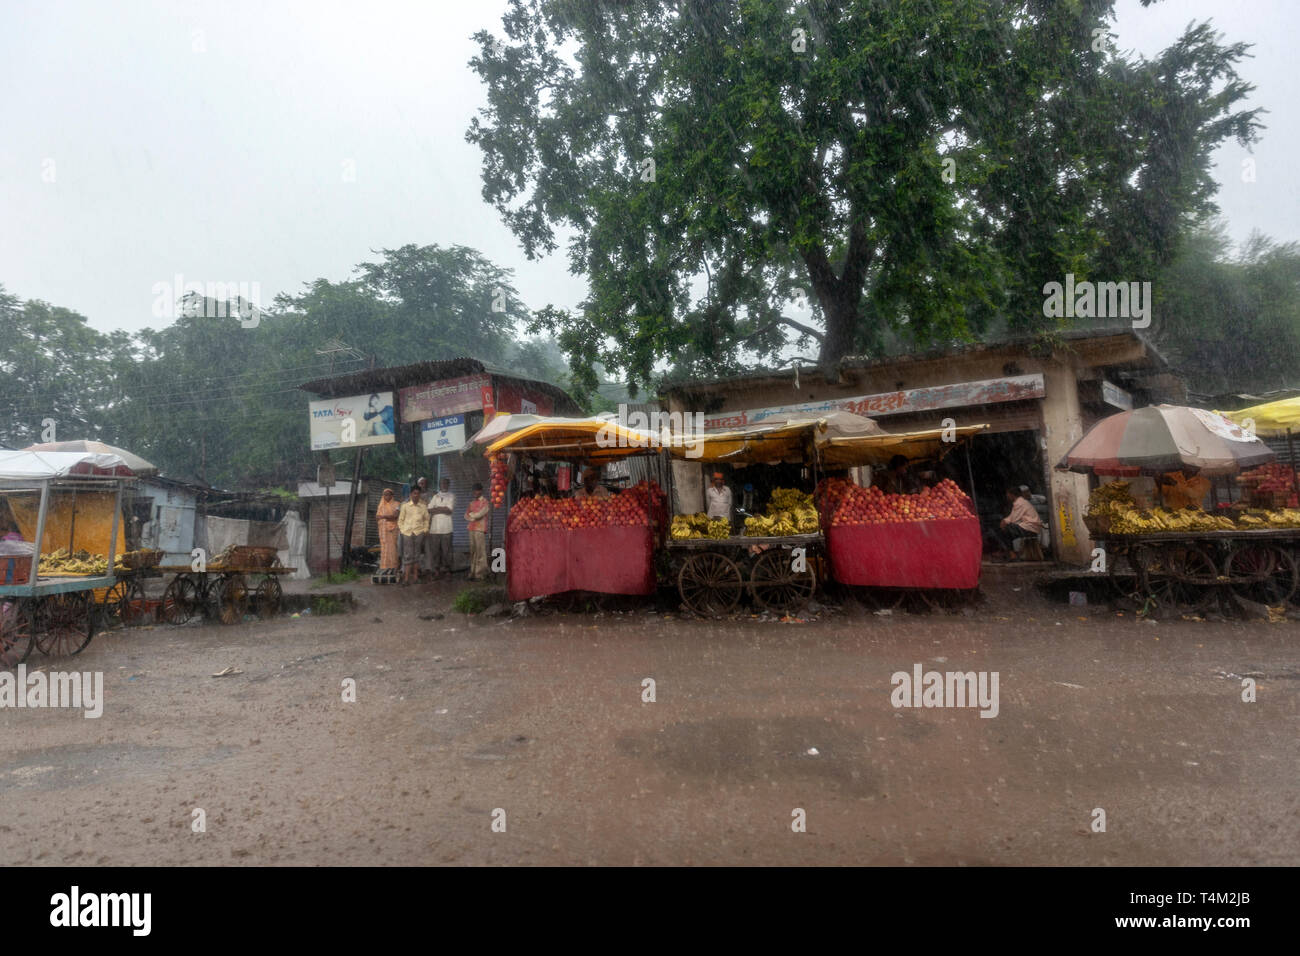 side-road-village-market-with-fruit-stal